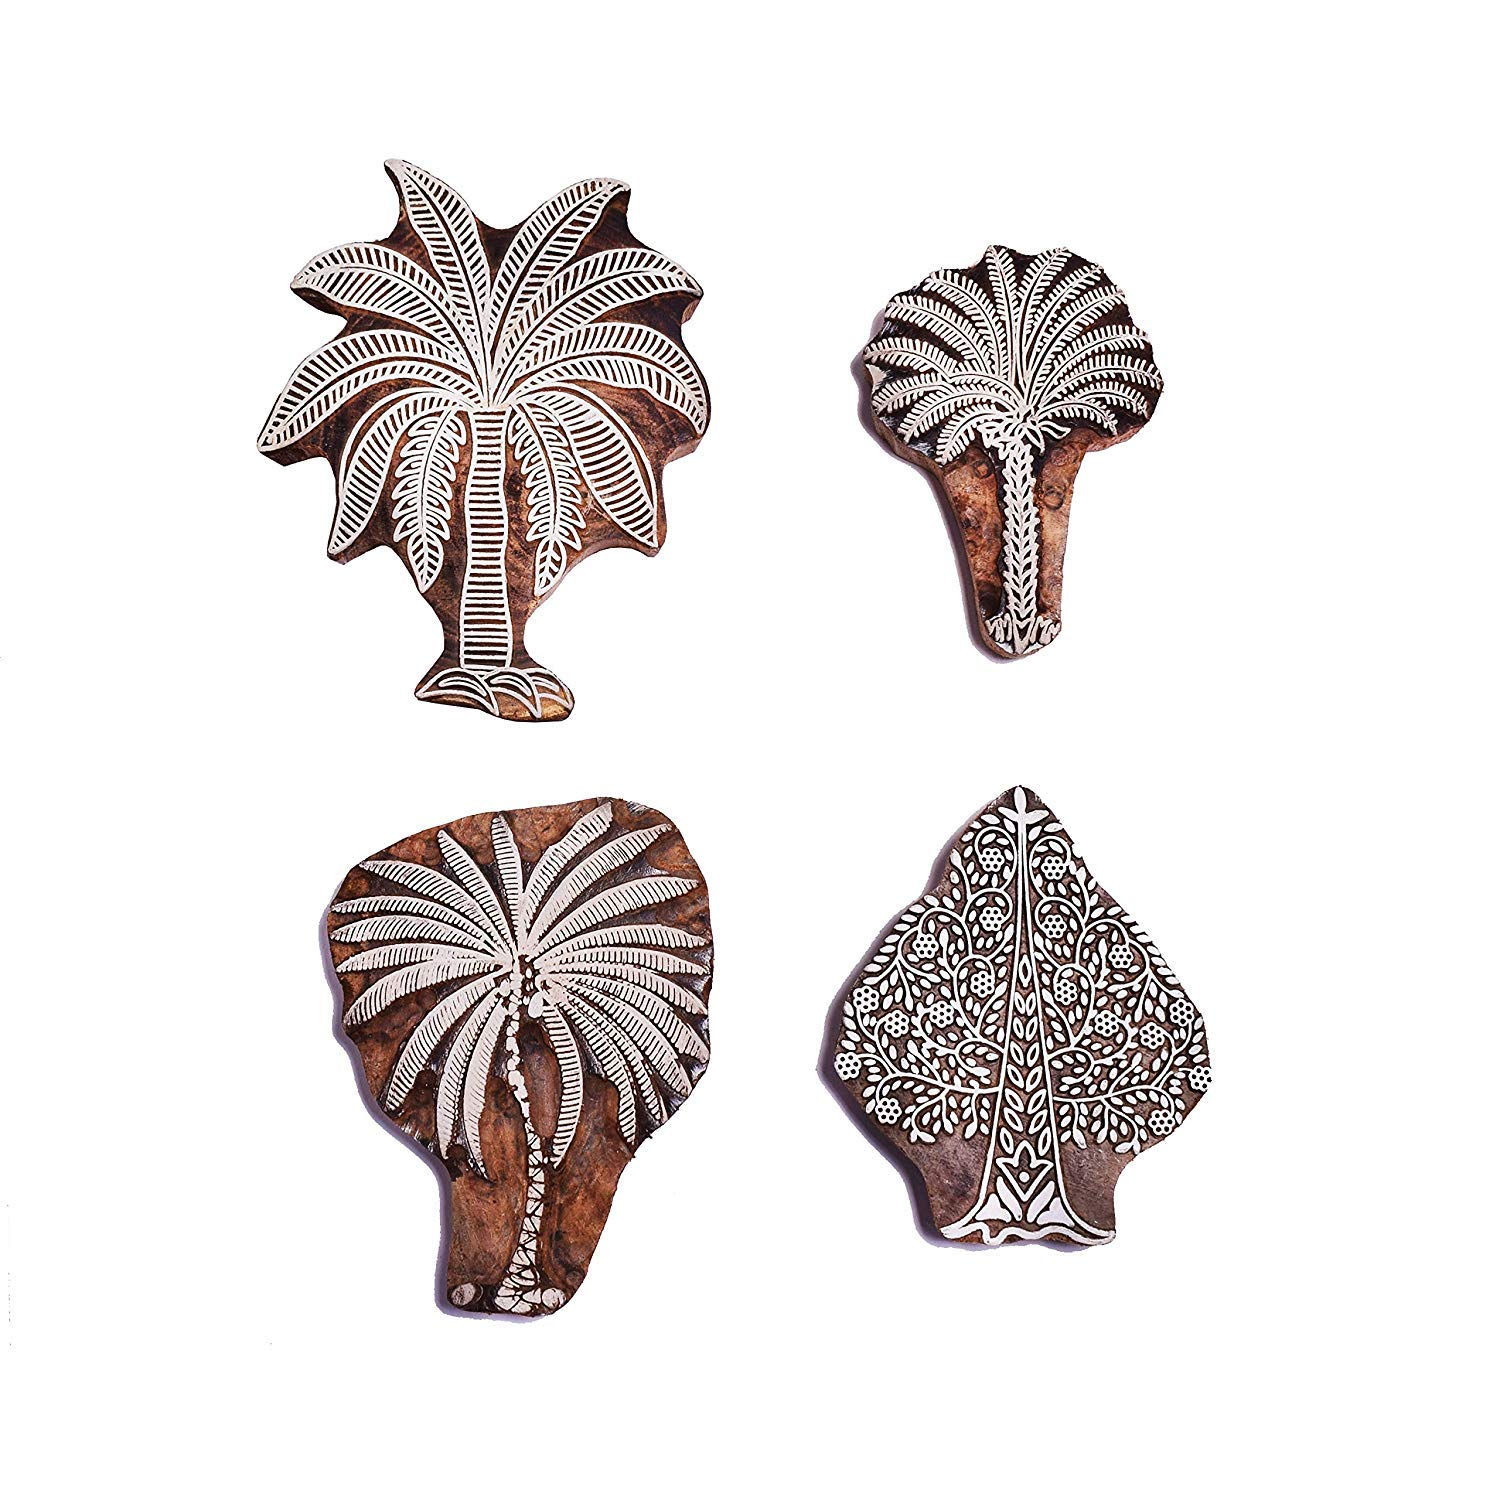 PARIJAT HANDICRAFT Tree Design Wooden Printing Stamp Block Hand-Carved for Saree Border Making Pottery Crafts Textile Printing - Set of 4